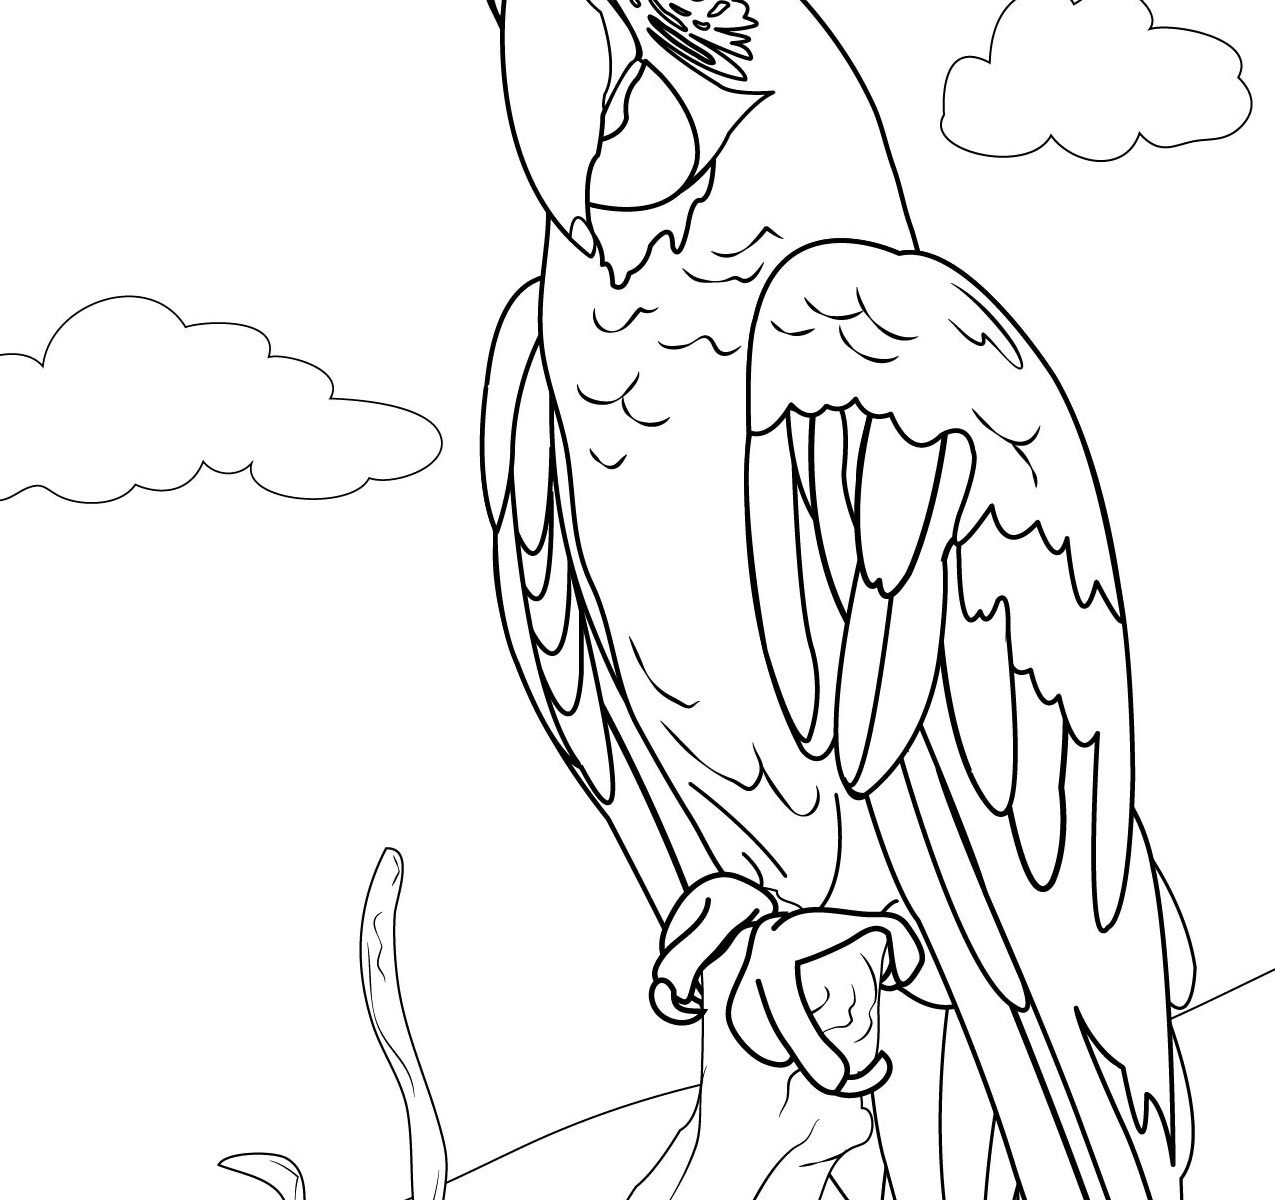 Macaw Drawing at GetDrawings.com | Free for personal use Macaw ...